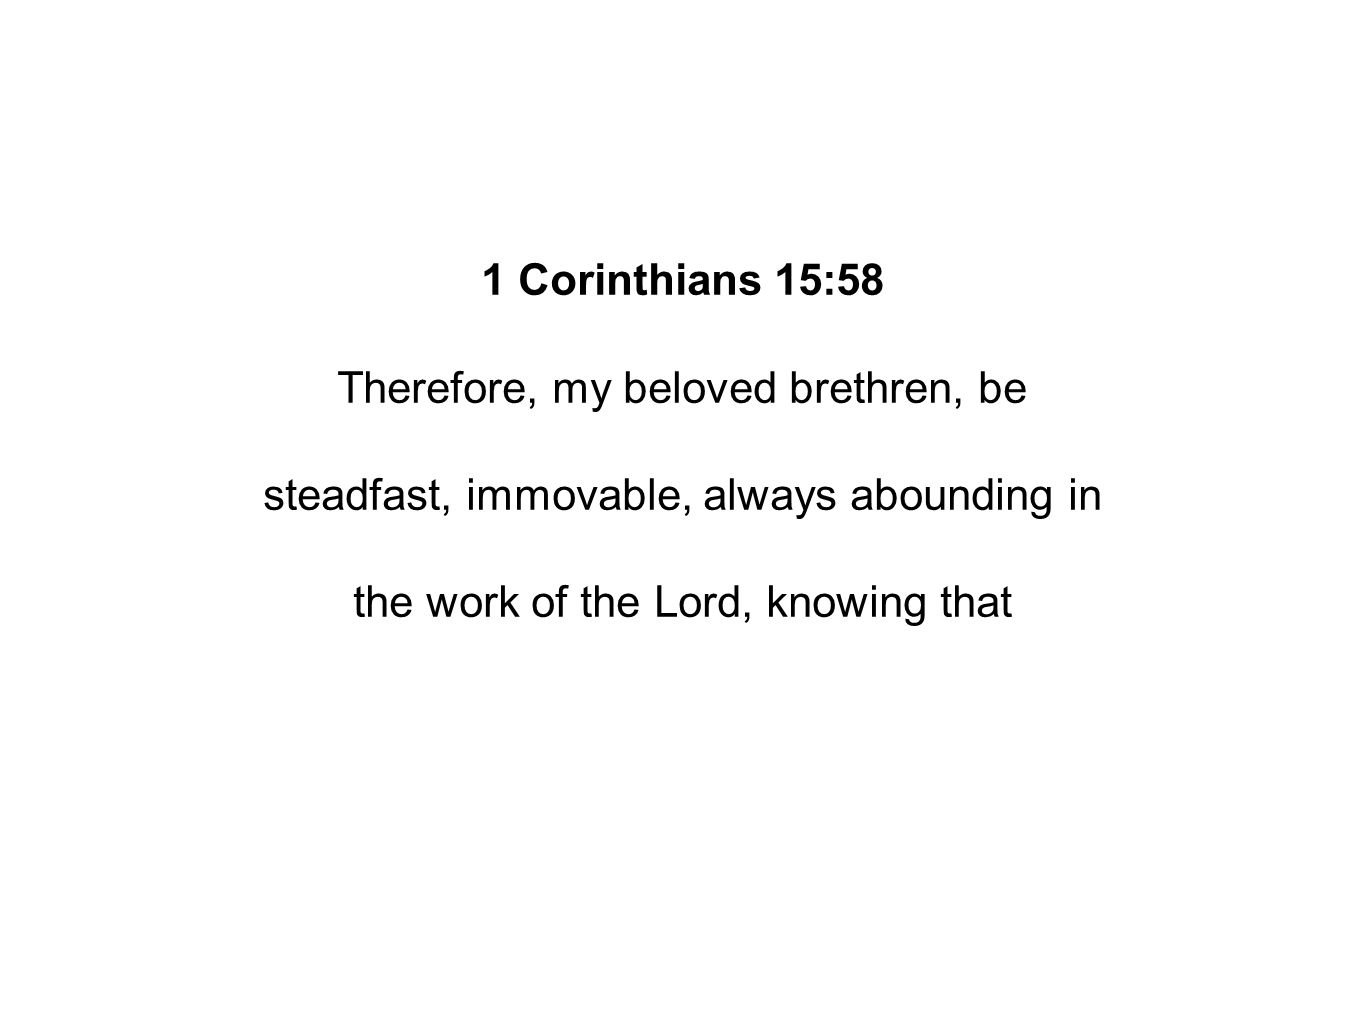 1 Corinthians 15:58 Therefore, my beloved brethren, be steadfast, immovable, always abounding in the work of the Lord, knowing that